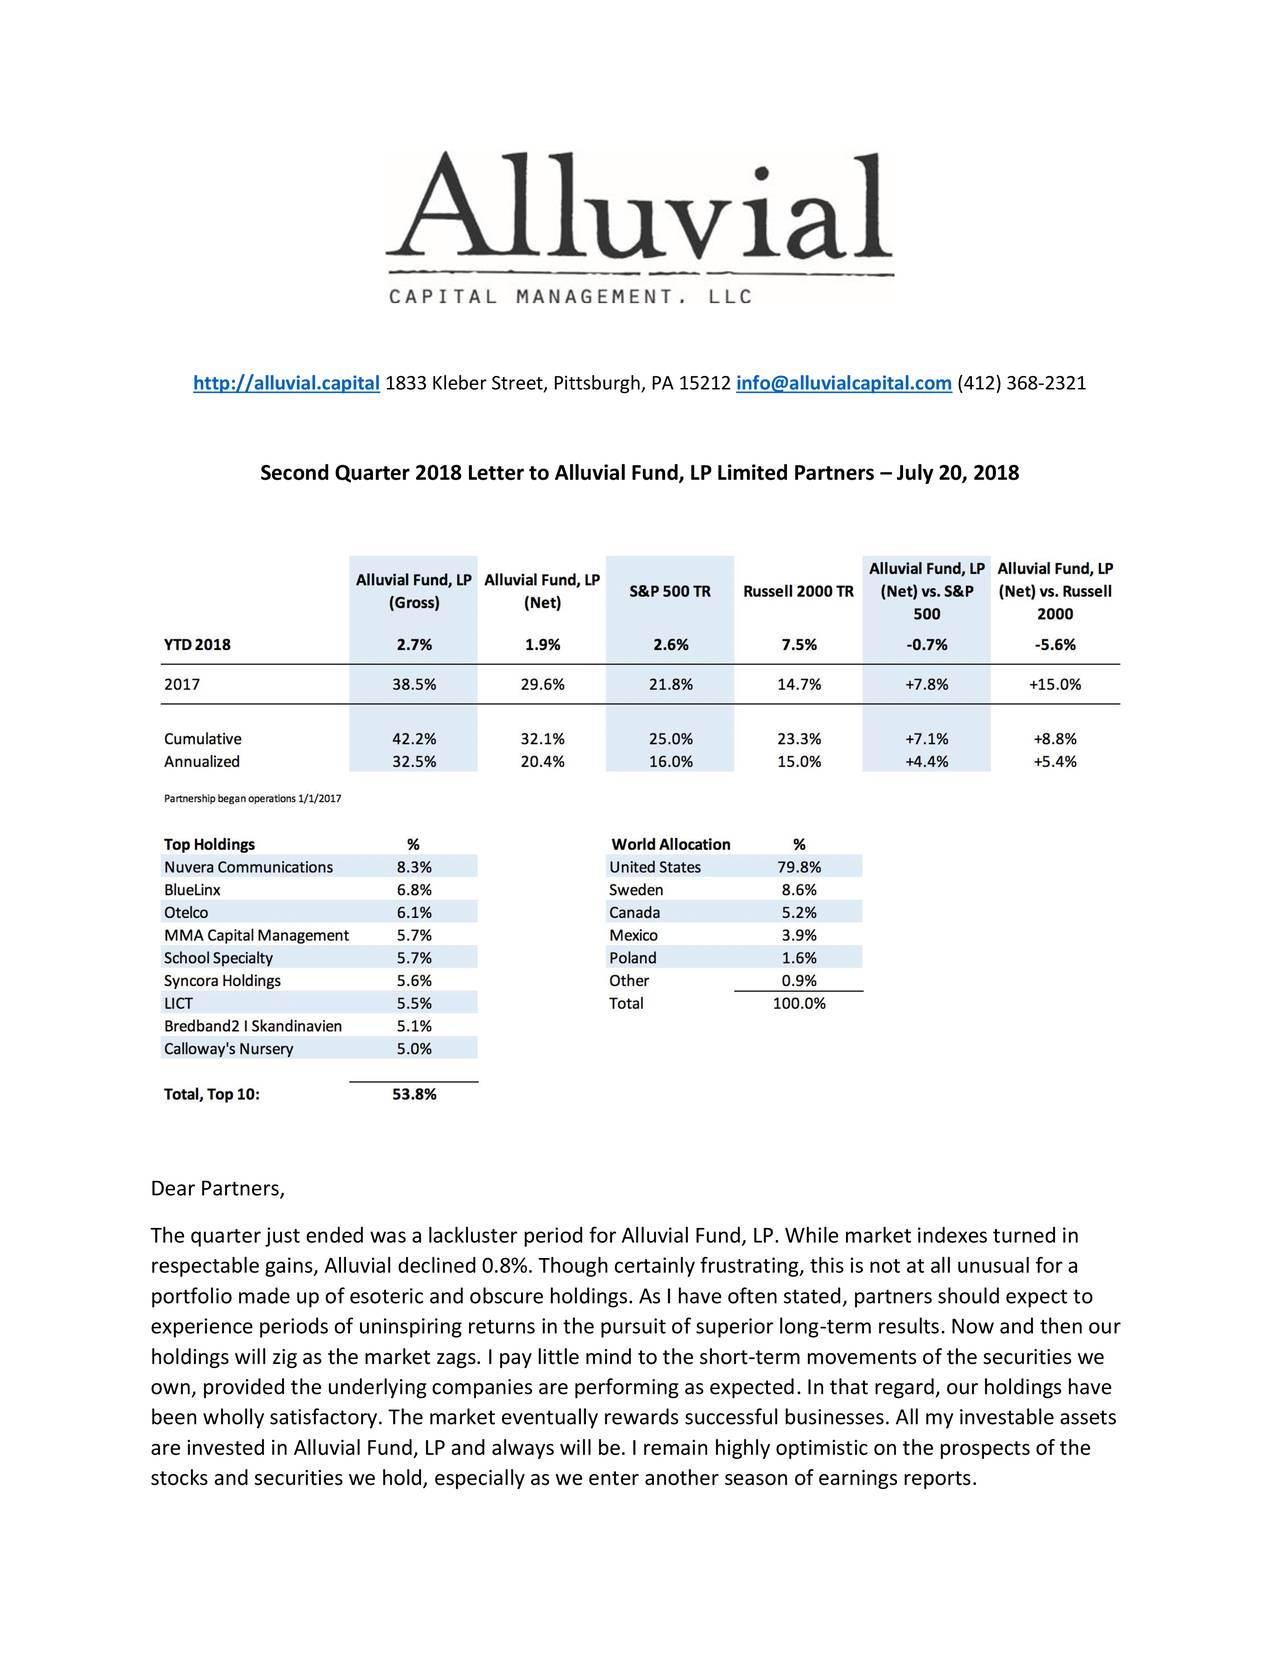 Second Quarter 2018 Letter to Alluvial Fund, LP Limited Partners – July 20, 2018 Dear Partners, The quarter just ended was a lackluster period for Alluvial Fund, LP. While market indexes turned in respectable gains, Alluvial declined 0.8%. Though certainly frustrating, this is not at all unusual for a portfolio made up of esoteric and obscure holdings. As I have often stated, partners should expect to experience periods of uninspiring returns in the pursuit of superior long-term results. Now and then our holdings will zig as the market zags. I pay little mind to the short-term movements of the securities we own, provided the underlying companies are performing as expected. In that regard, our holdings have been wholly satisfactory. The market eventually rewards successful businesses. All my investable assets are invested in Alluvial Fund, LP and always will be. I remain highly optimistic on the prospects of the stocks and securities we hold, especially as we enter another season of earnings reports.